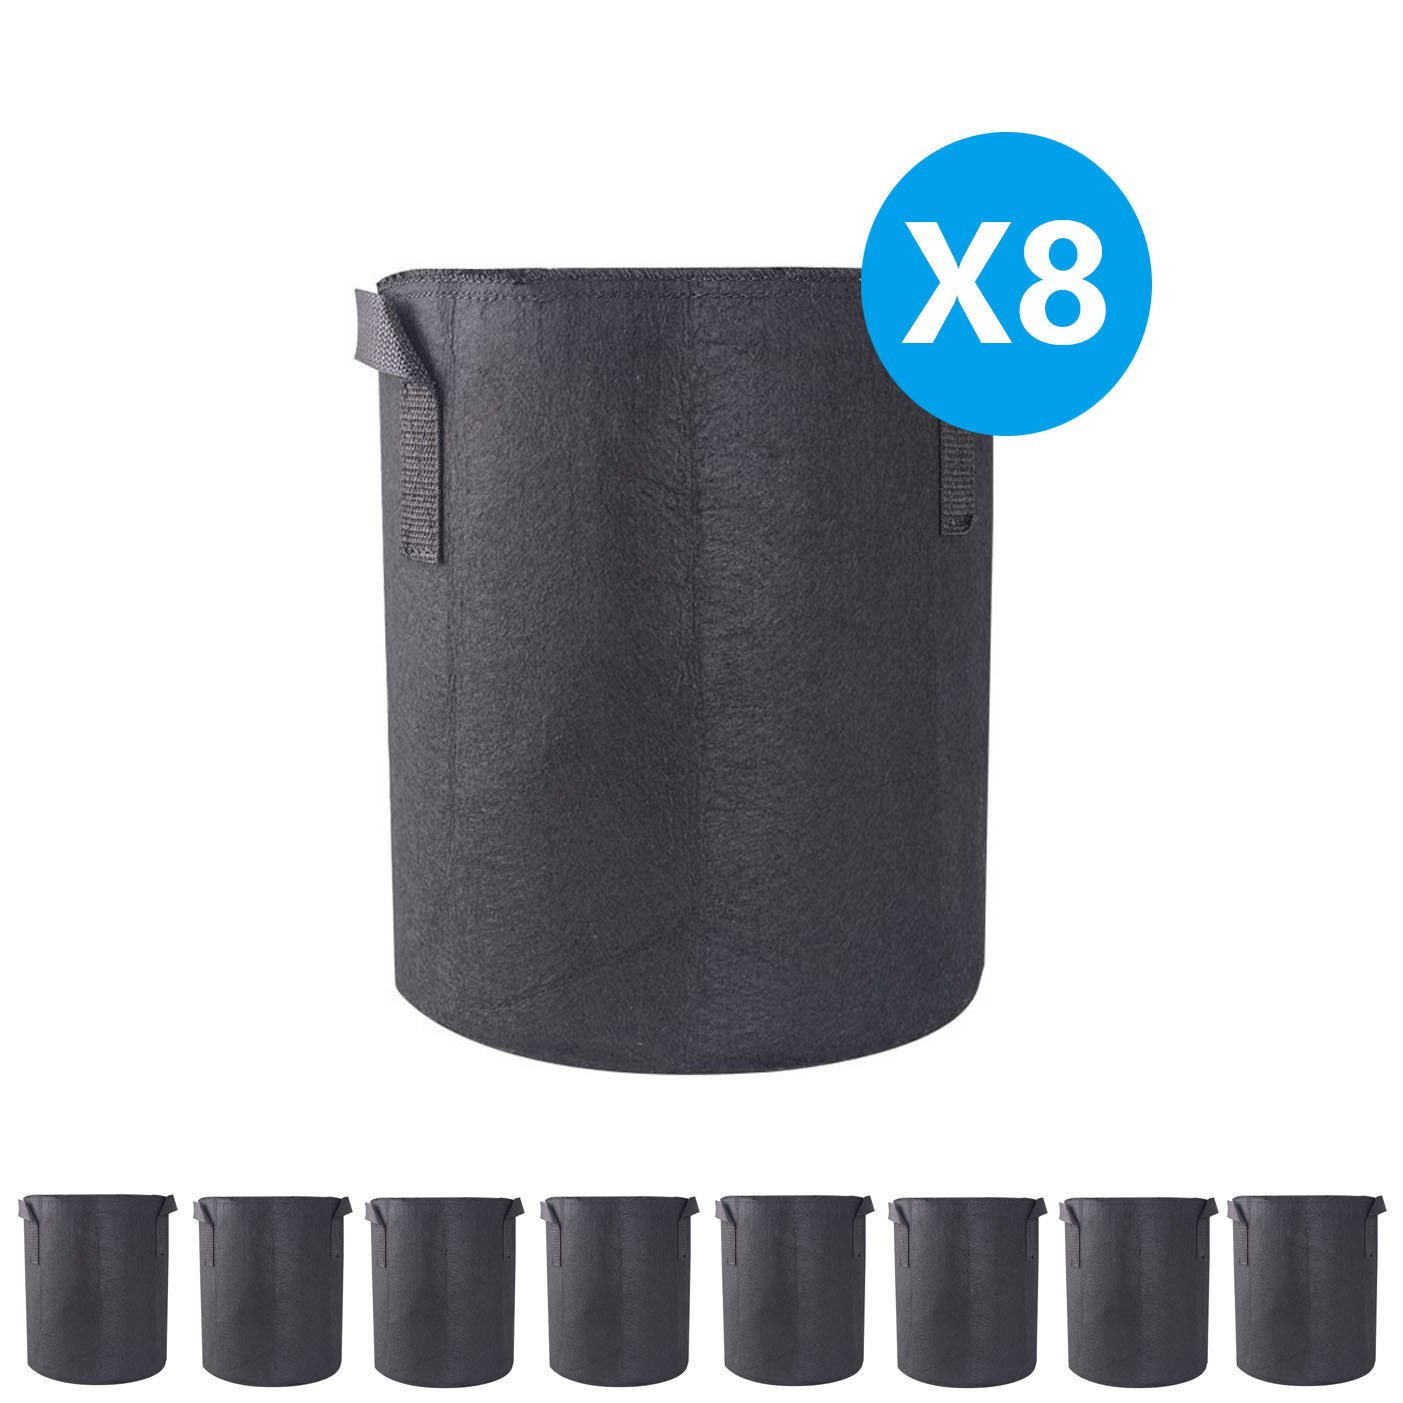 A1KINGDOM 8-PACK 3 Gallon Grow Bags Heavy Duty Thickened Non-woven Smart Plant Aeration Fabric Pots Containers with Handles for Nursery Garden and Planting